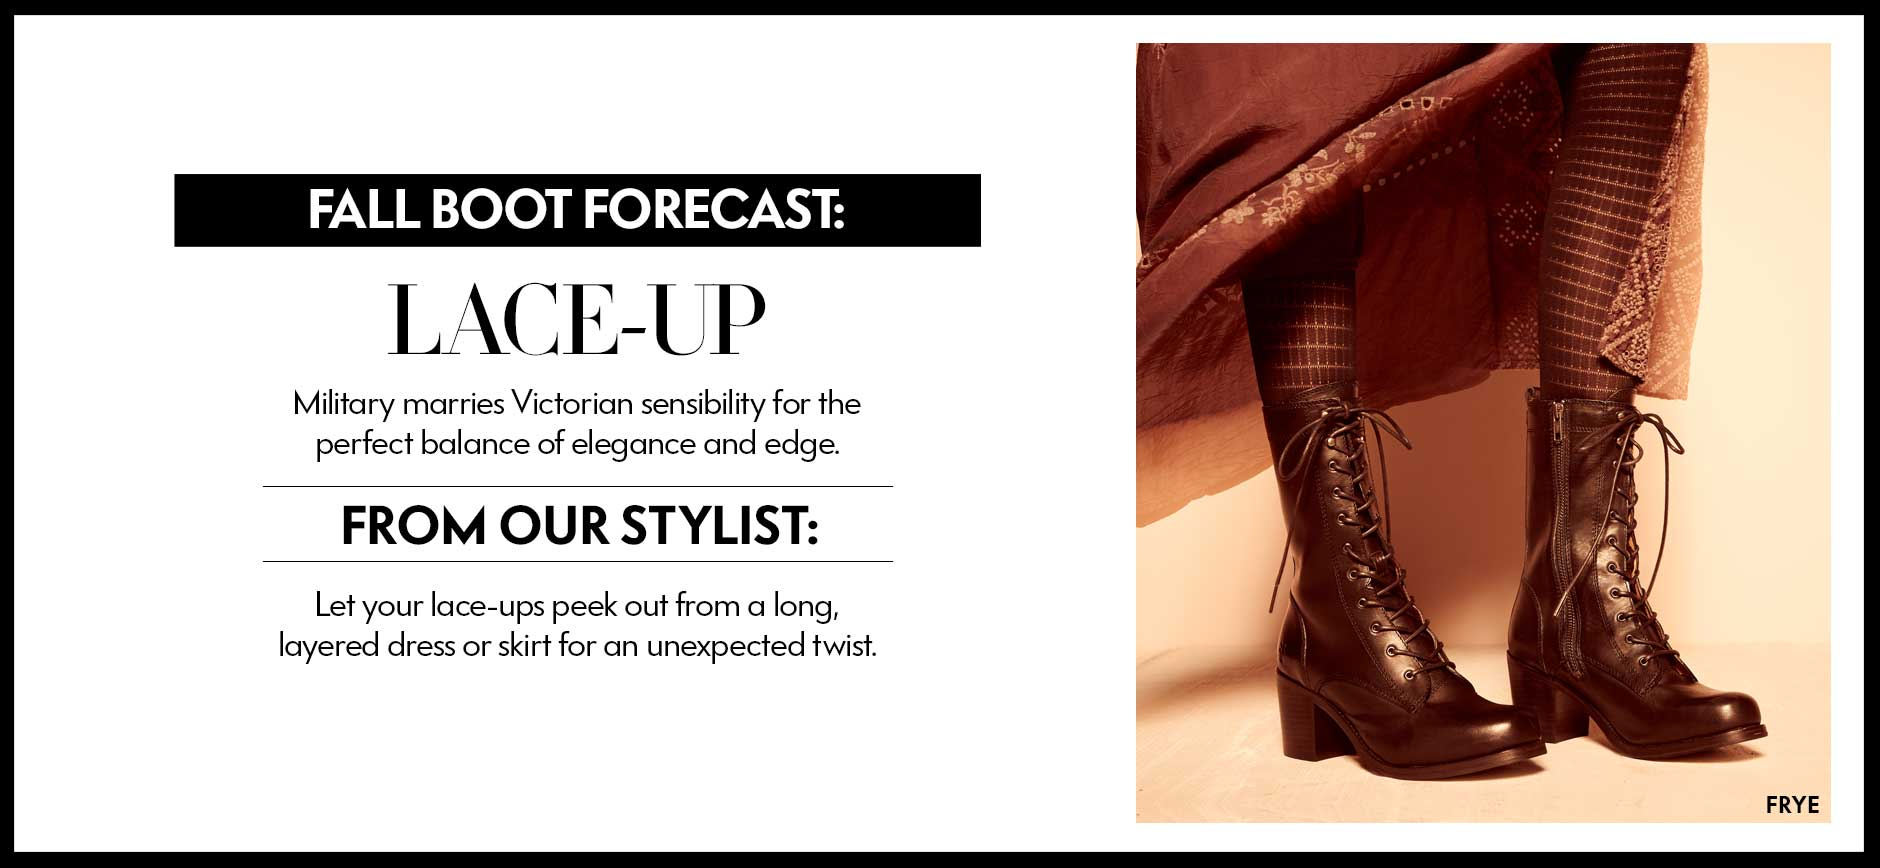 Boot Forecast: Lace Up